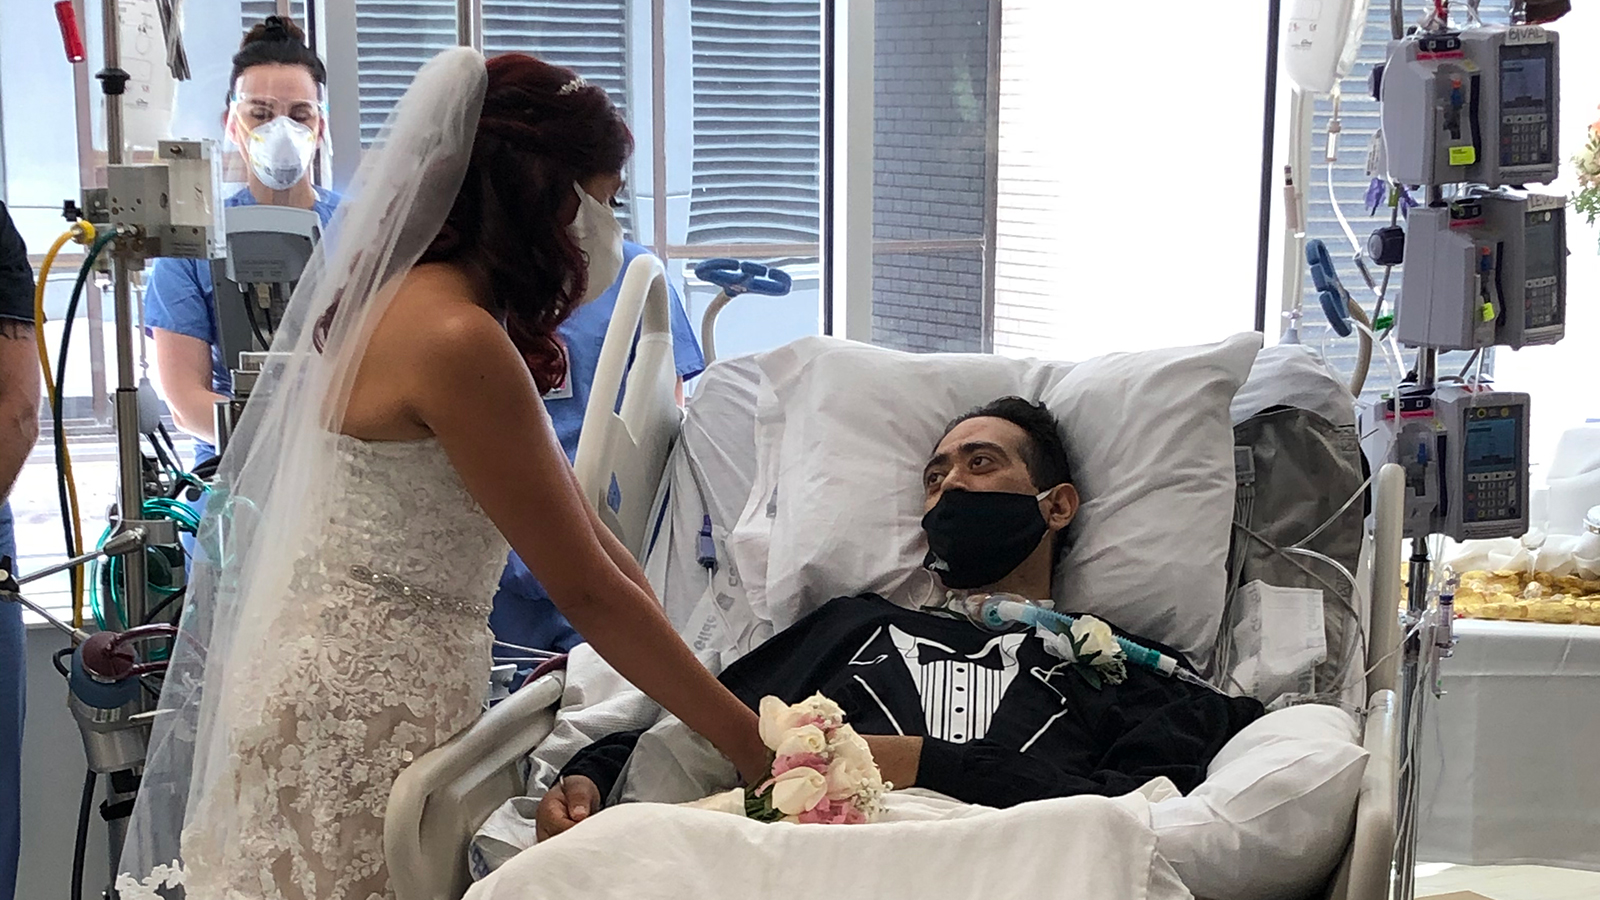 Nurses in a San Antonio hospital organize a patient's wedding to help lift his spirits